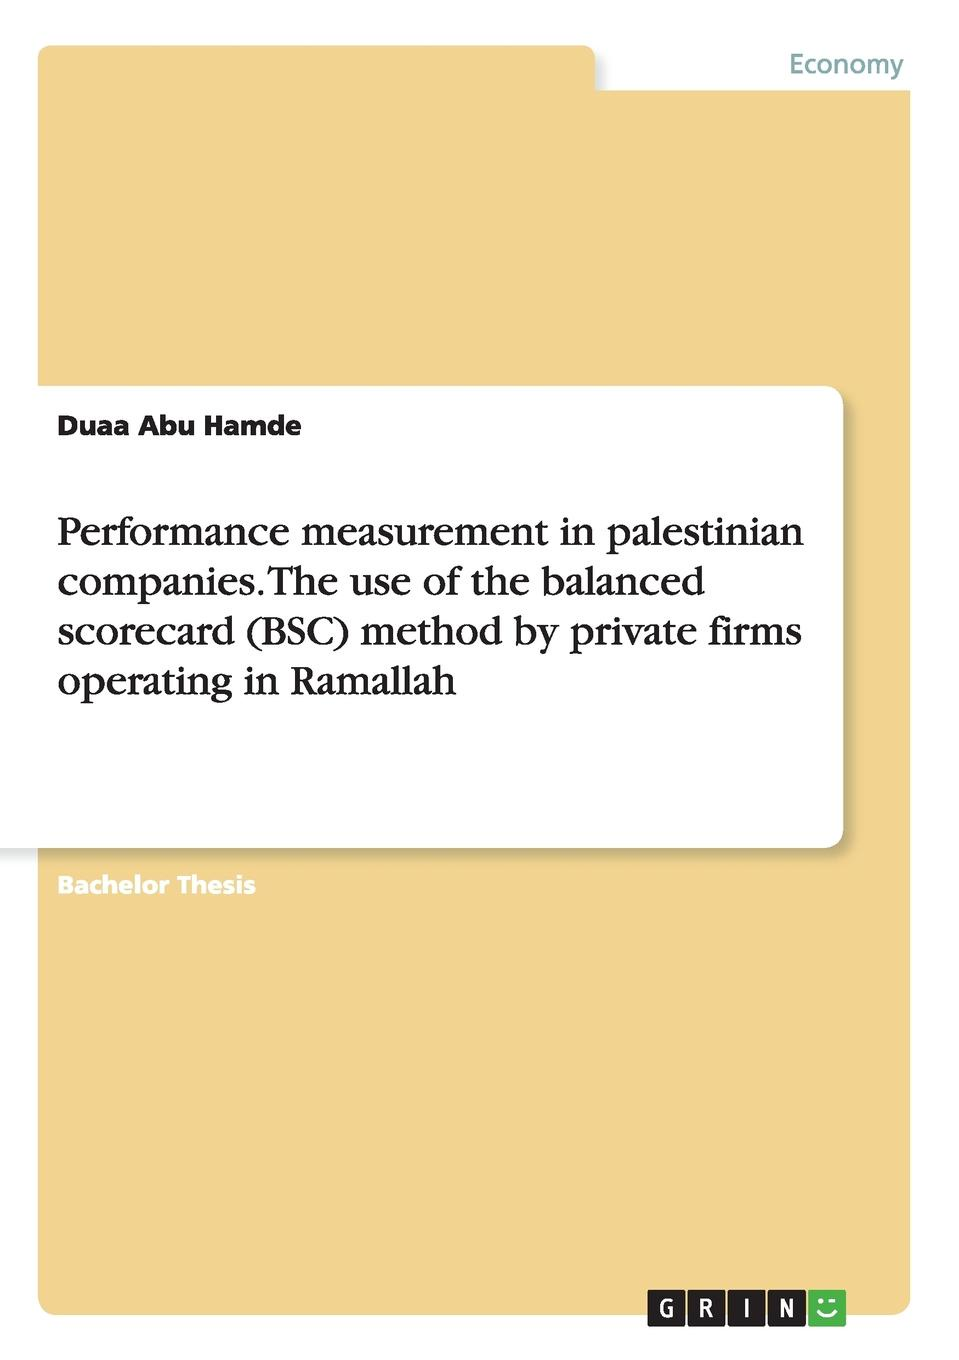 Duaa Abu Hamde Performance measurement in palestinian companies. The use of the balanced scorecard (BSC) method by private firms operating in Ramallah